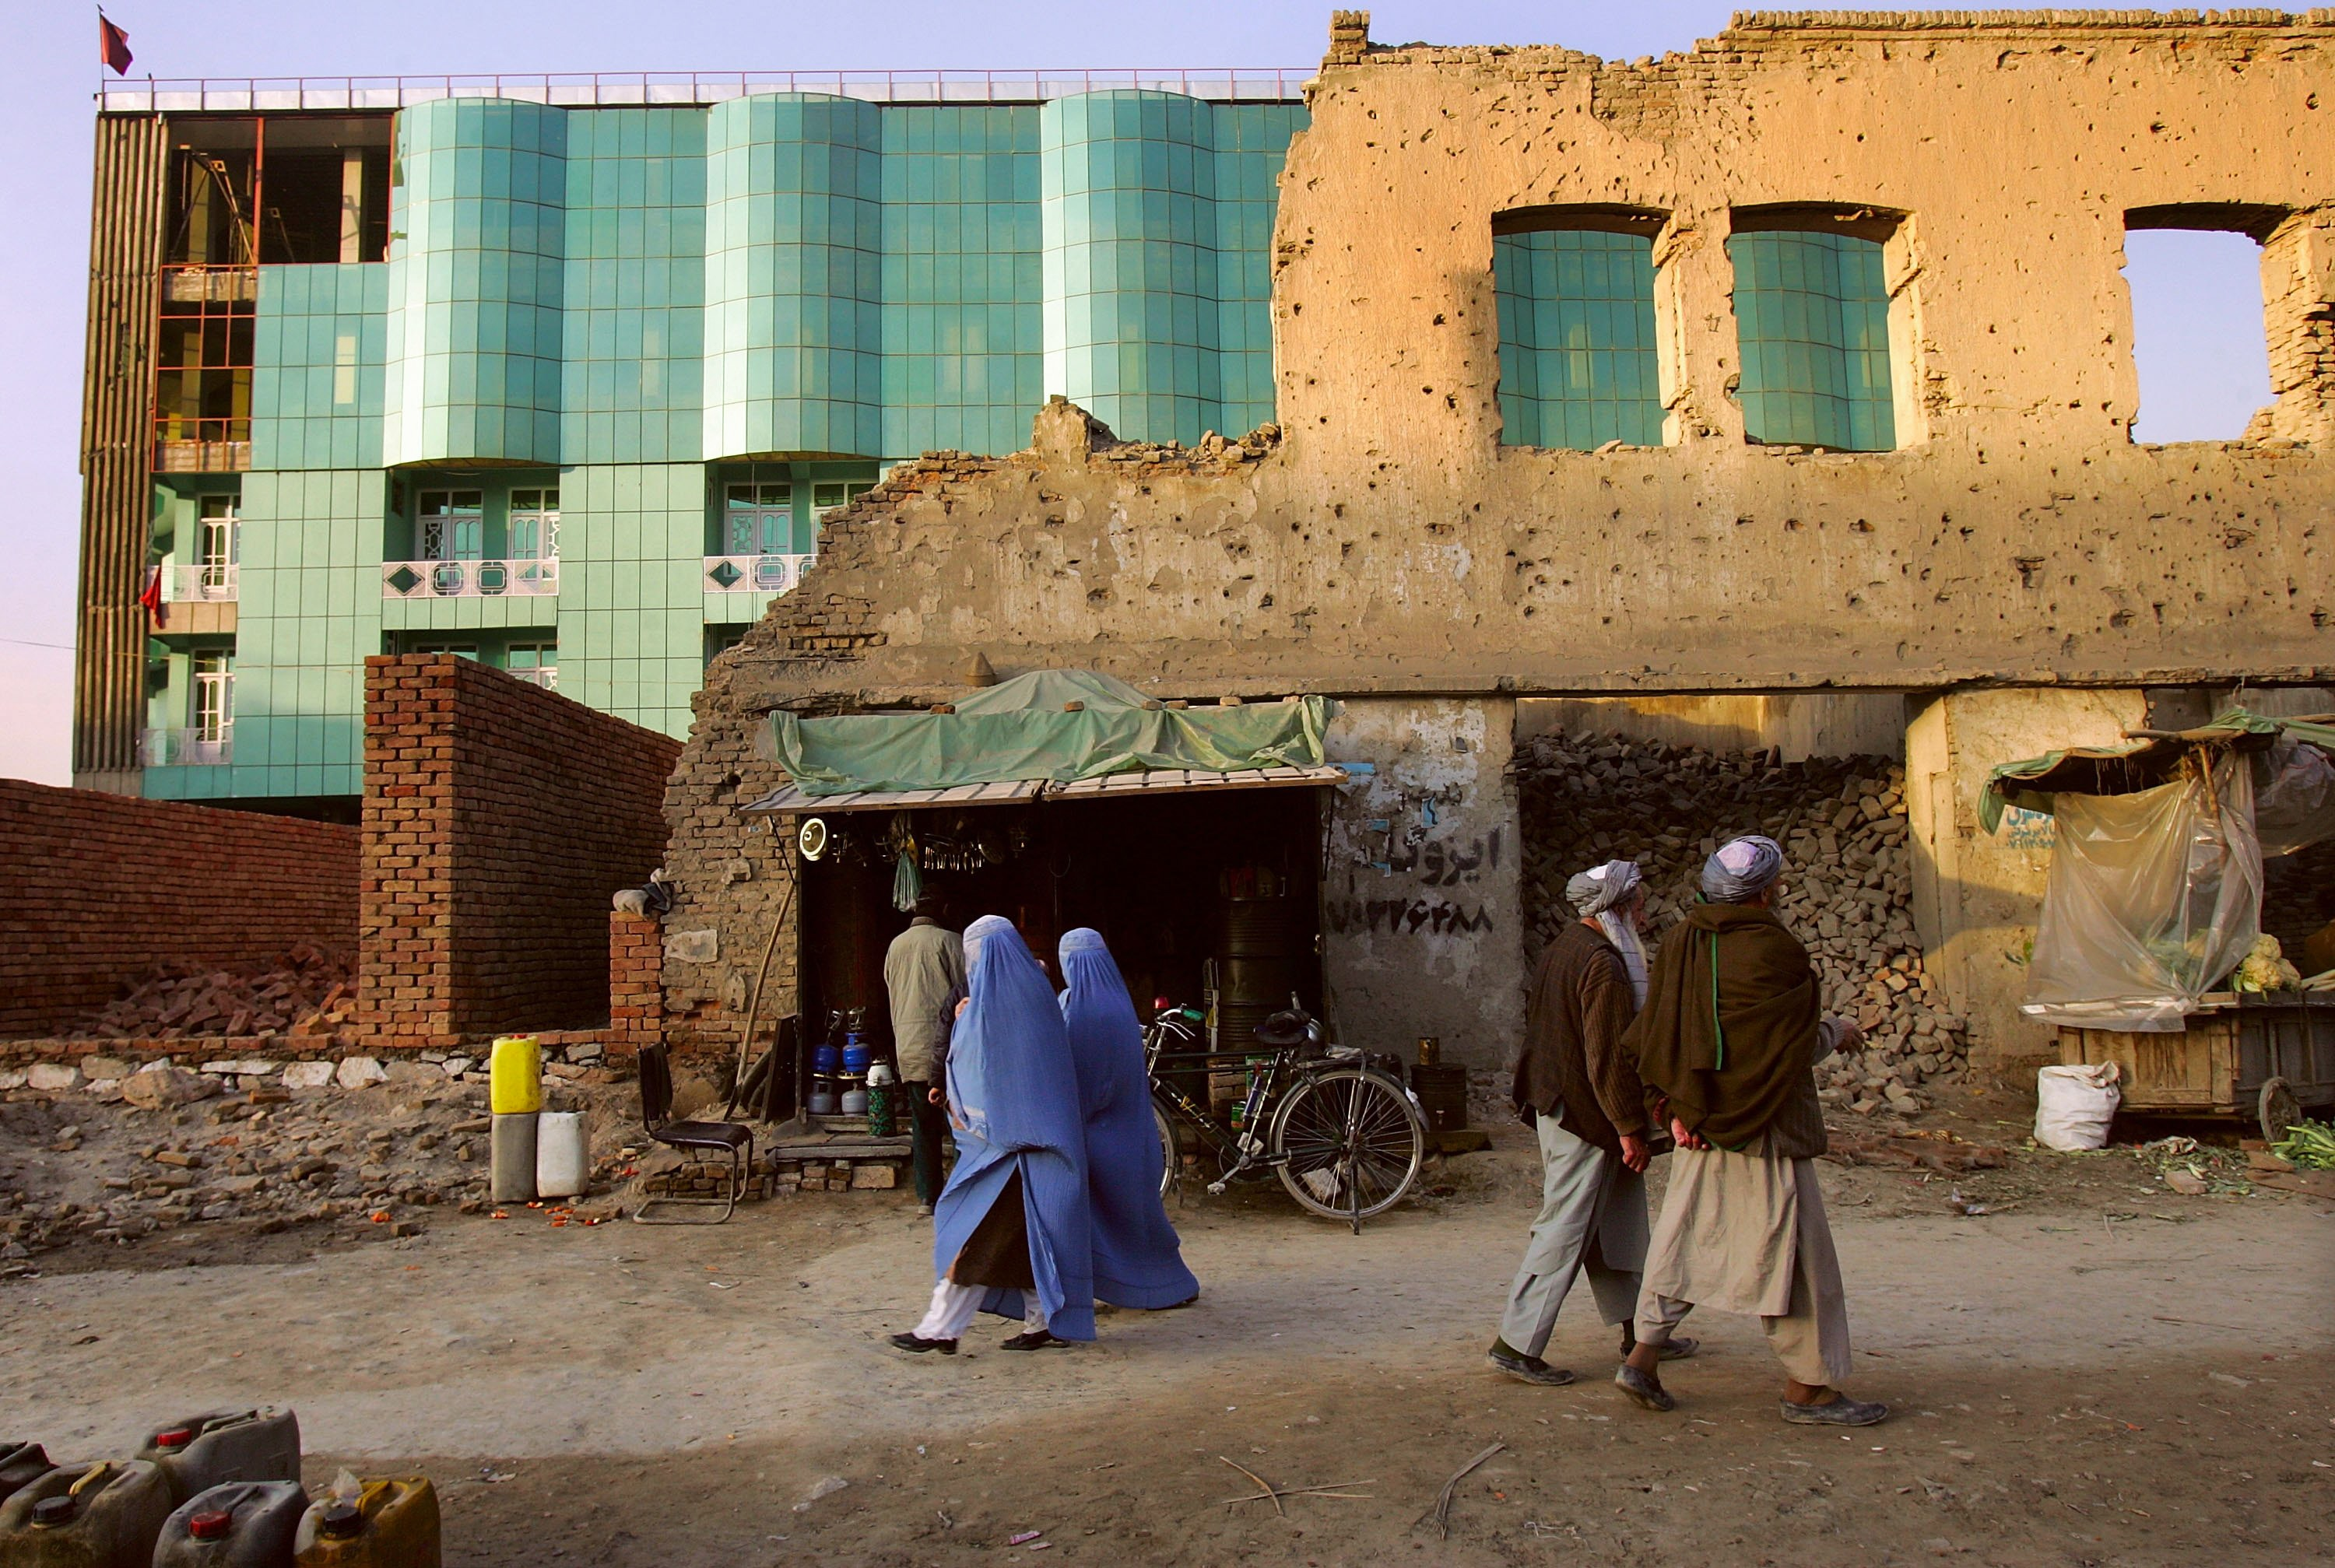 KABUL, AFGHANISTAN - FEBRUARY 08: Afghans walk near a new hotel built amidst Afghan civil war ruins on February 8, 2006 in Kabul, Afghanistan. Construction is booming across Afghanistan, fueled by an influx of foreign aid and investments from returning Afghan expatriates. Many say drug money from the nation's heroin cultivation is often laundered through constuction projects as well. (Photo by John Moore/Getty Images)